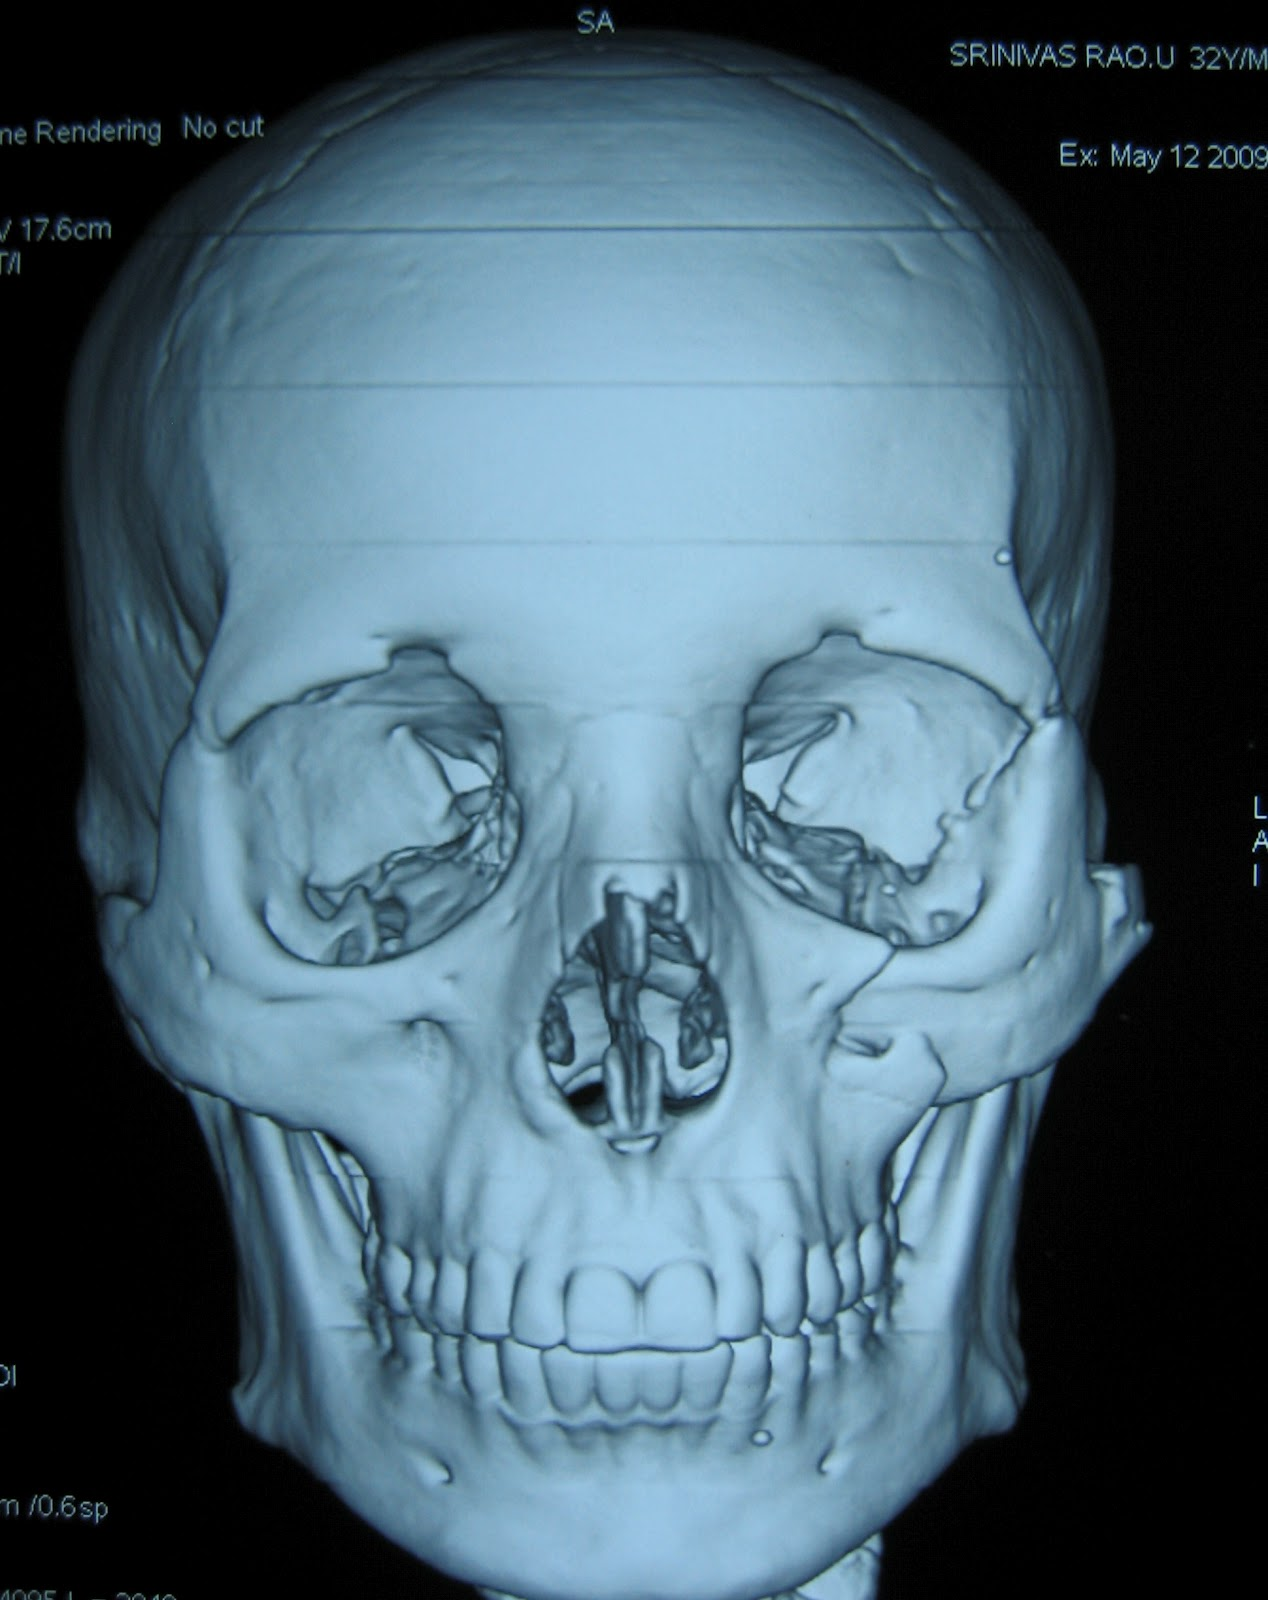 loss with fracture zygoma ct scan showing displaced fracture zygoma